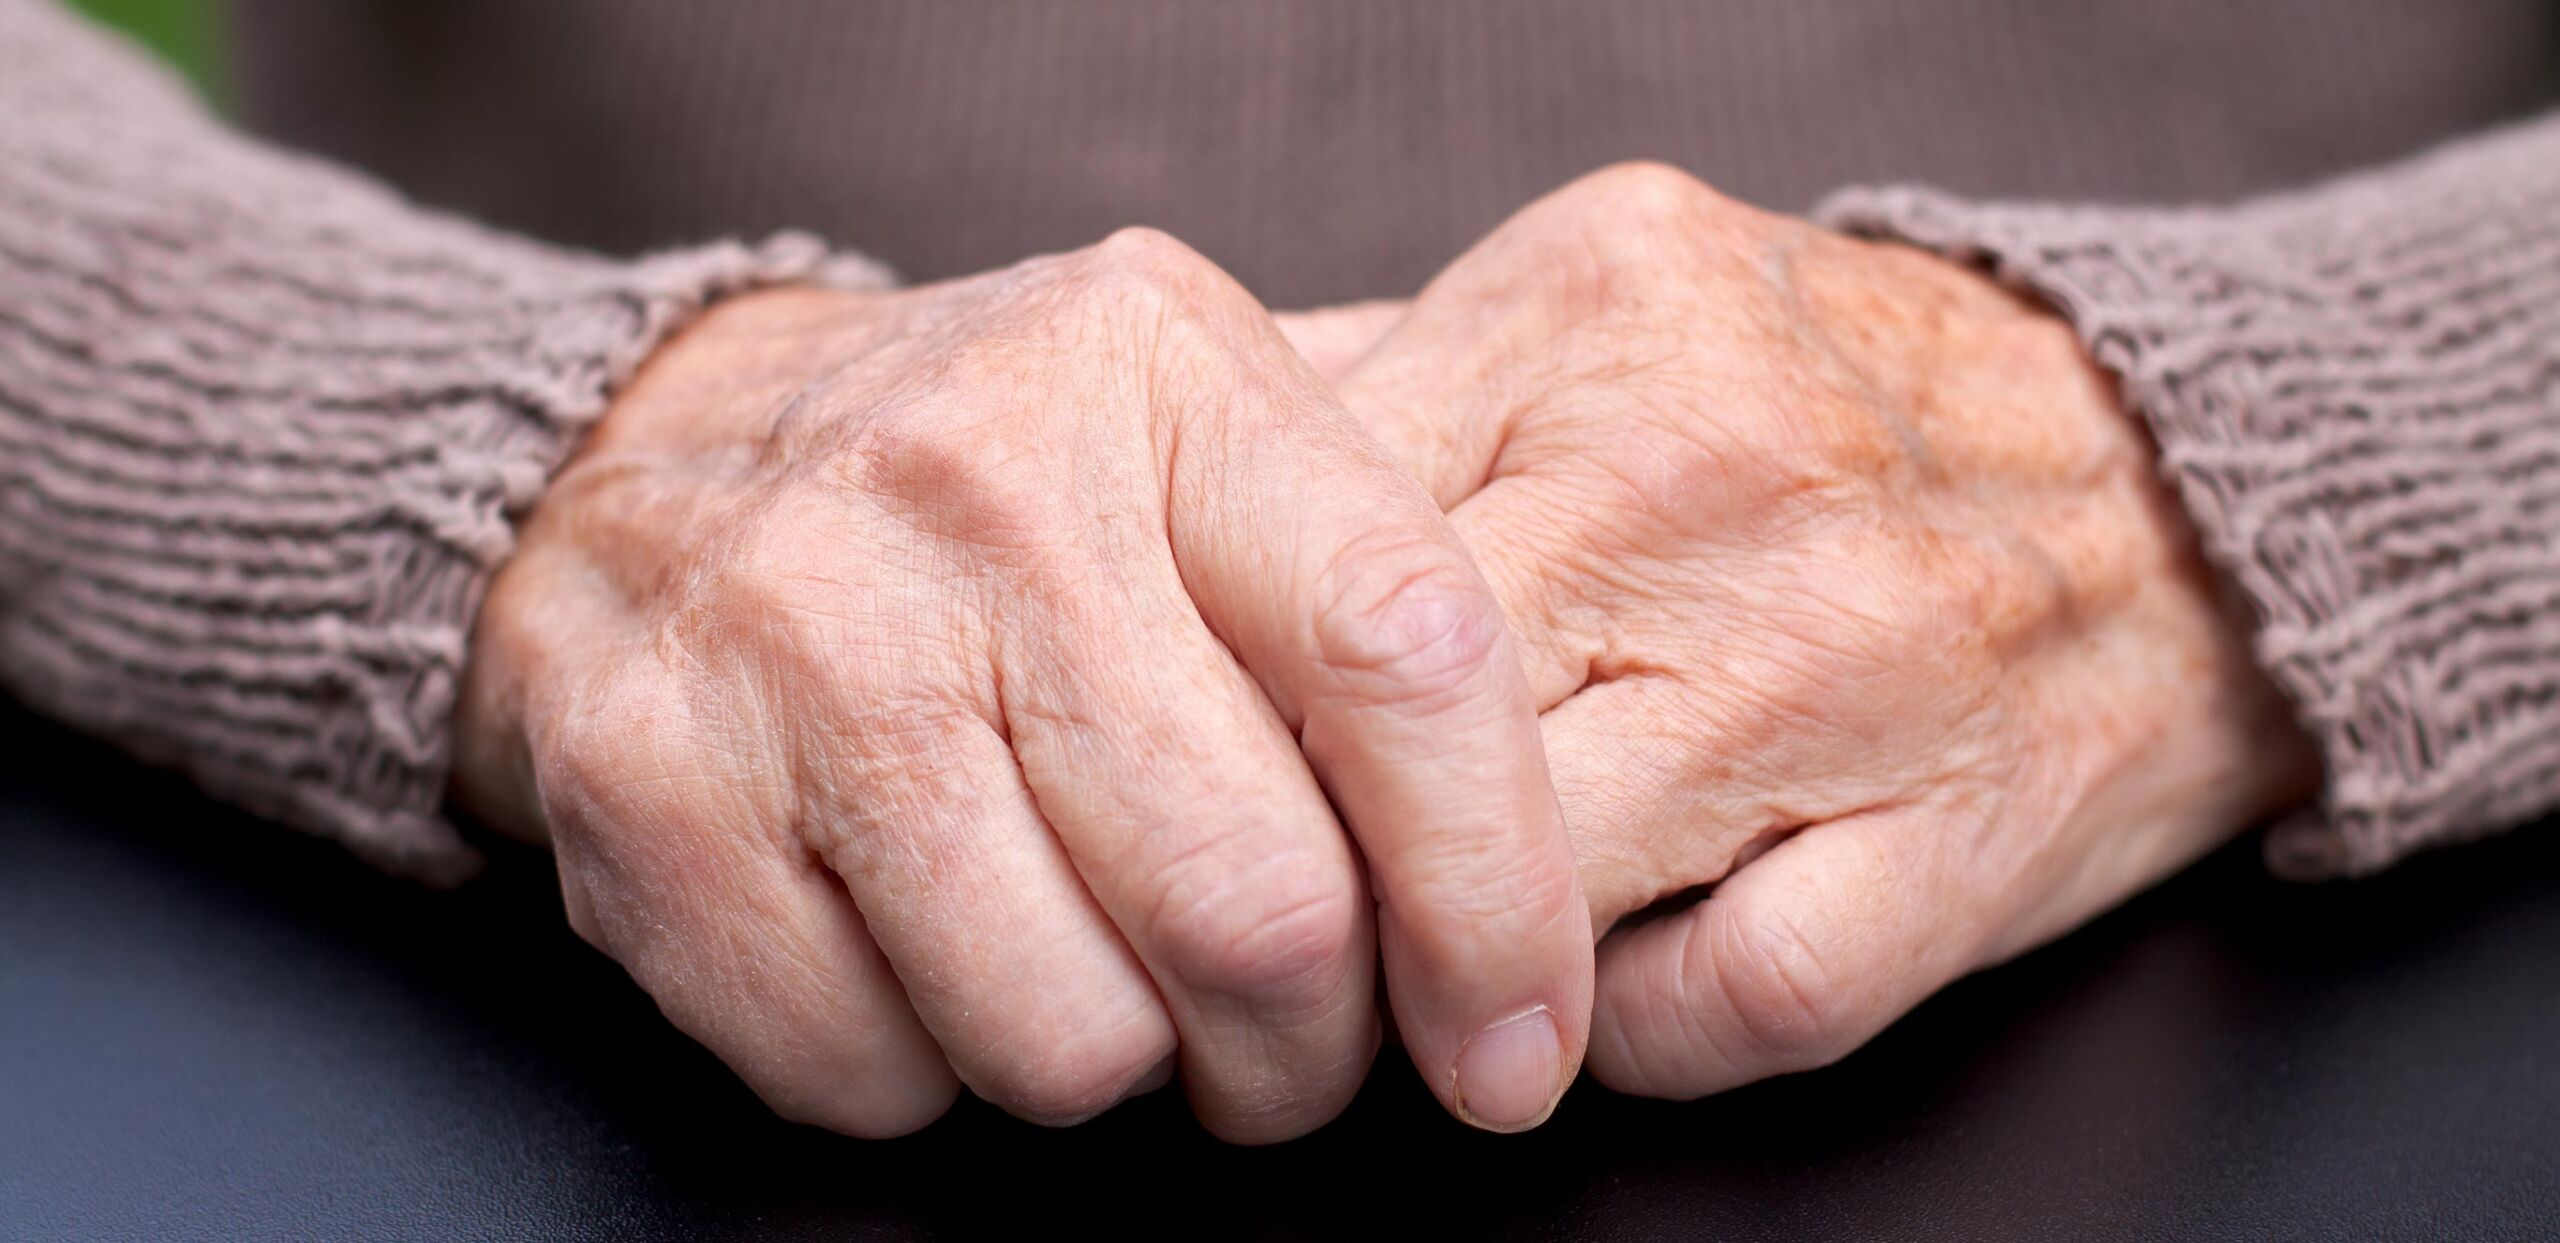 Elderly person's hands, Cooley Dickinson Medical Group Rheumatology, 22 Atwood Drive, Northampton, MA 01060.